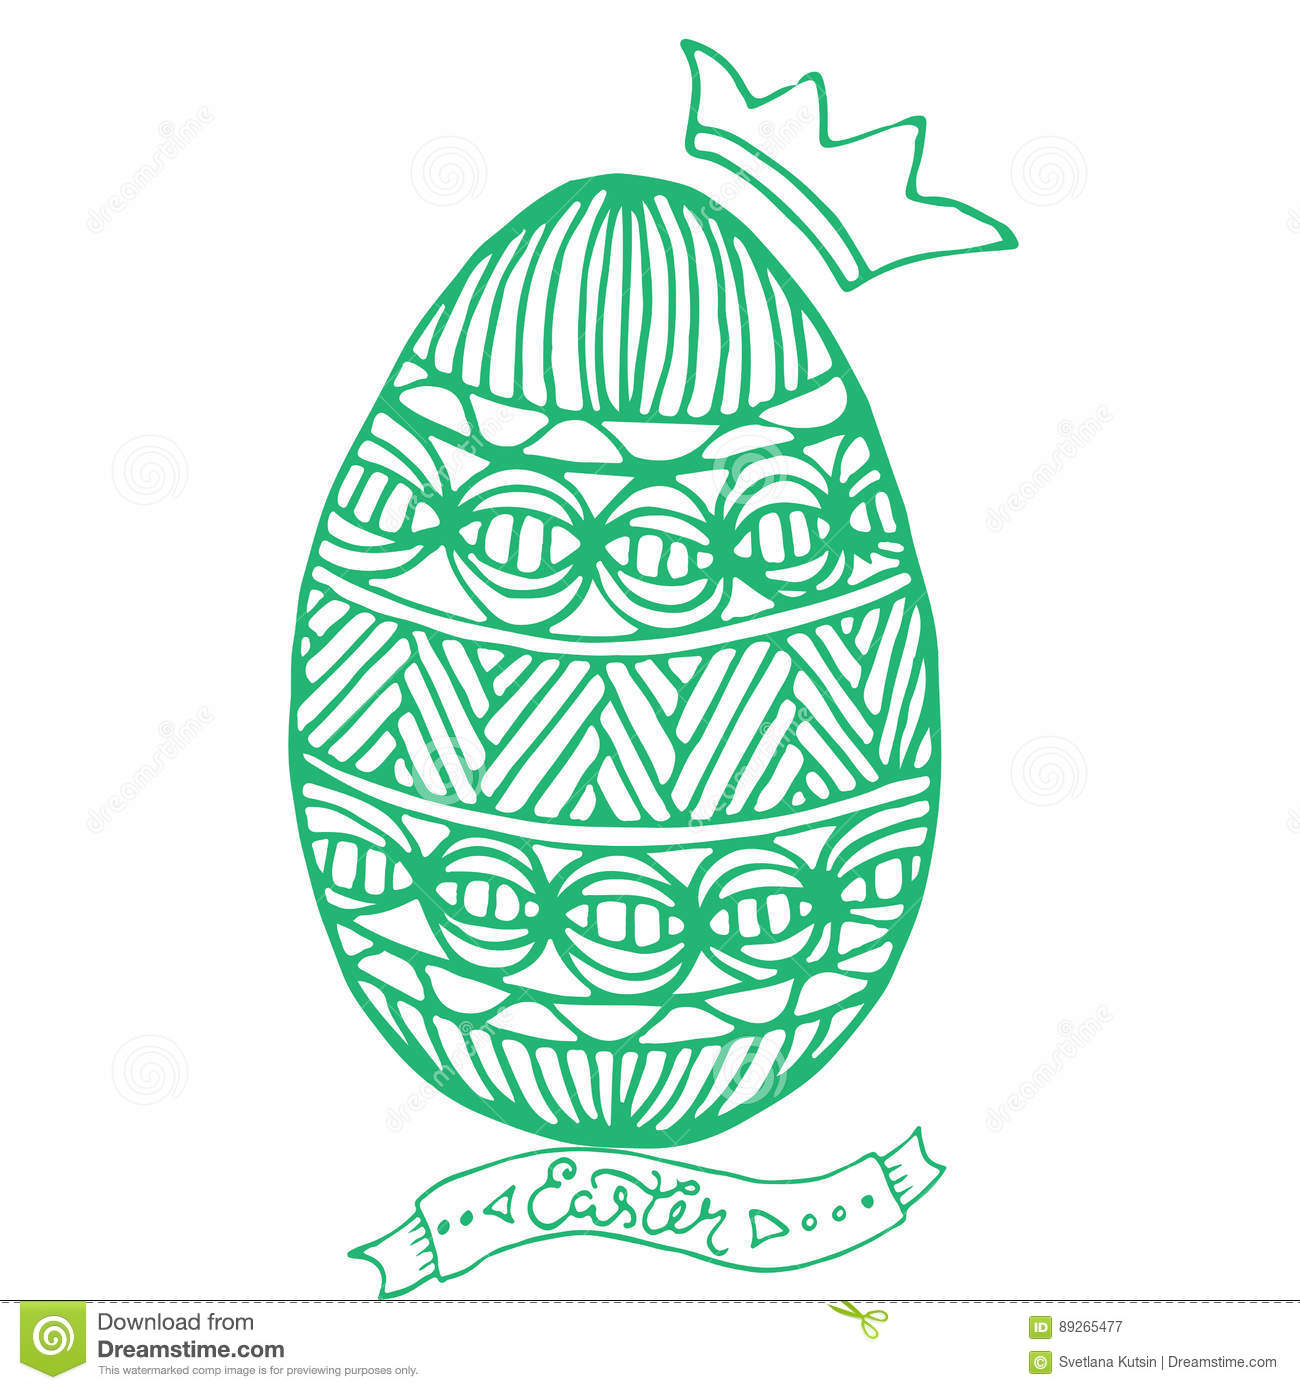 Happy Easter Egg For Greeting Card, Doodle Style. Coloring Page ...